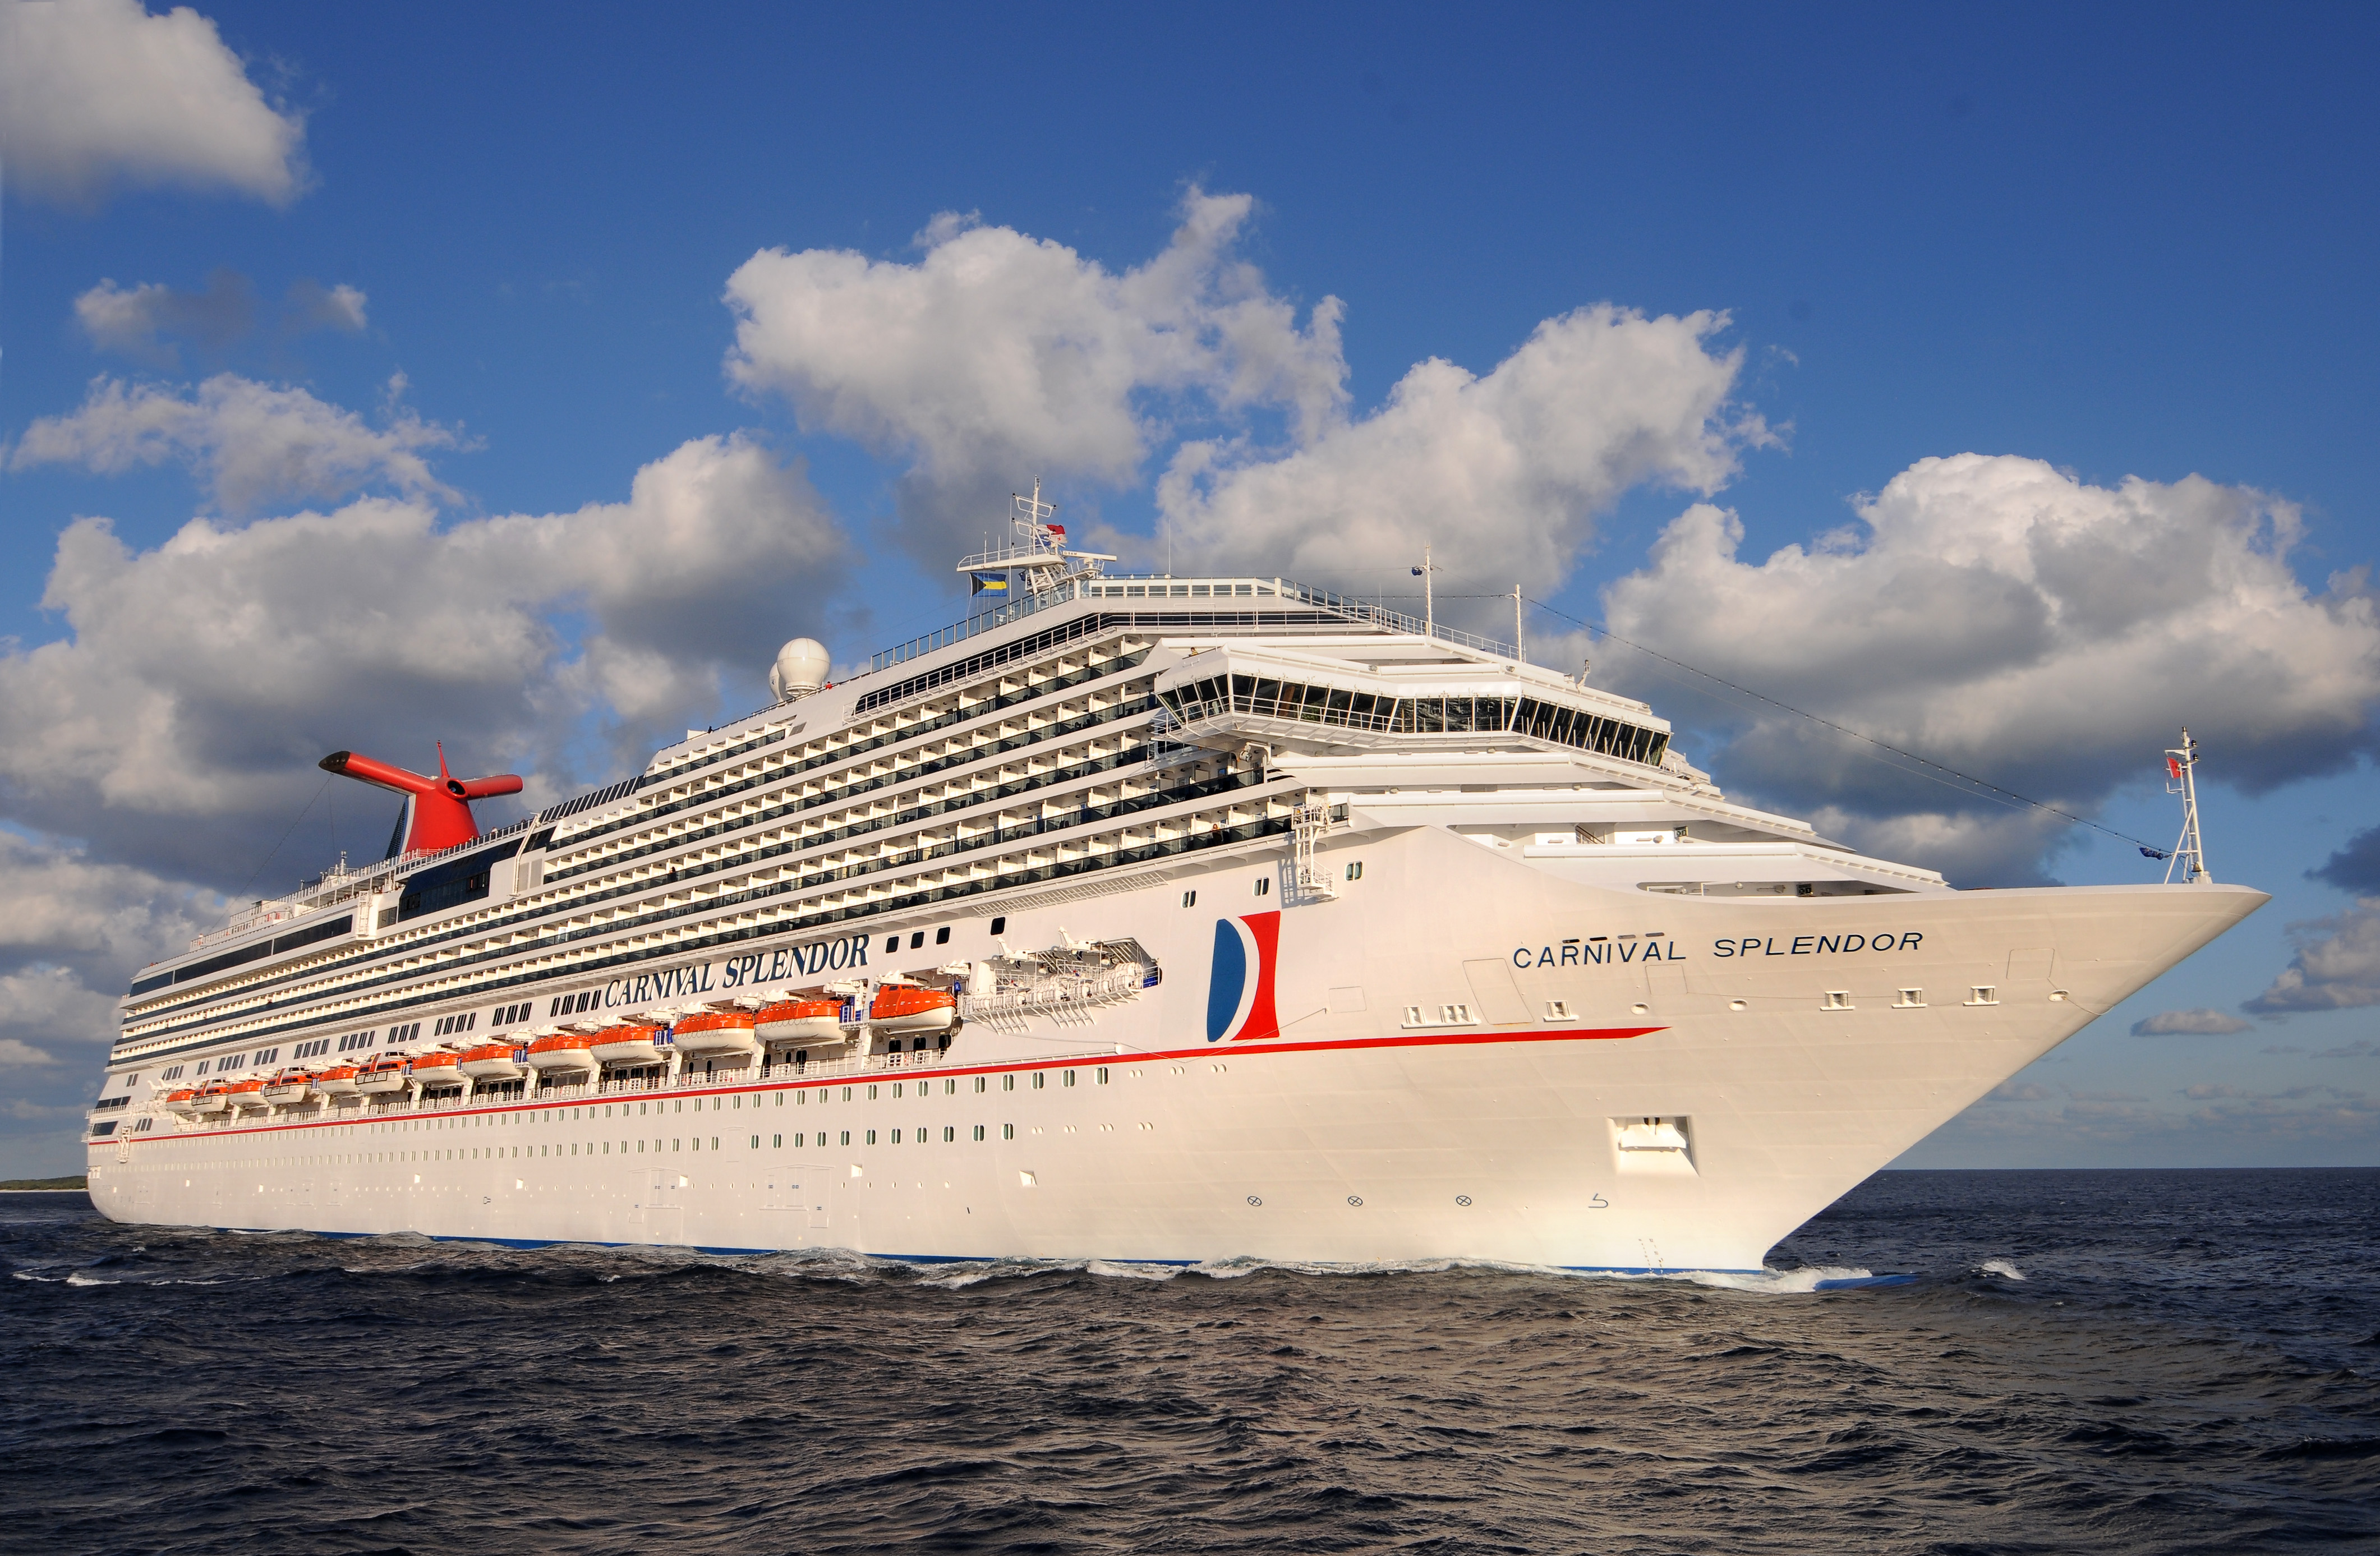 Αποτέλεσμα εικόνας για Carnival Cruise Line to Offer Three Exciting Longer Length Carnival Journeys Sailings in 2019, Including 24-Day Trans-Pacific Crossing, 13-Day Panama Canal Transit and 14-Day Hawaii Cruise